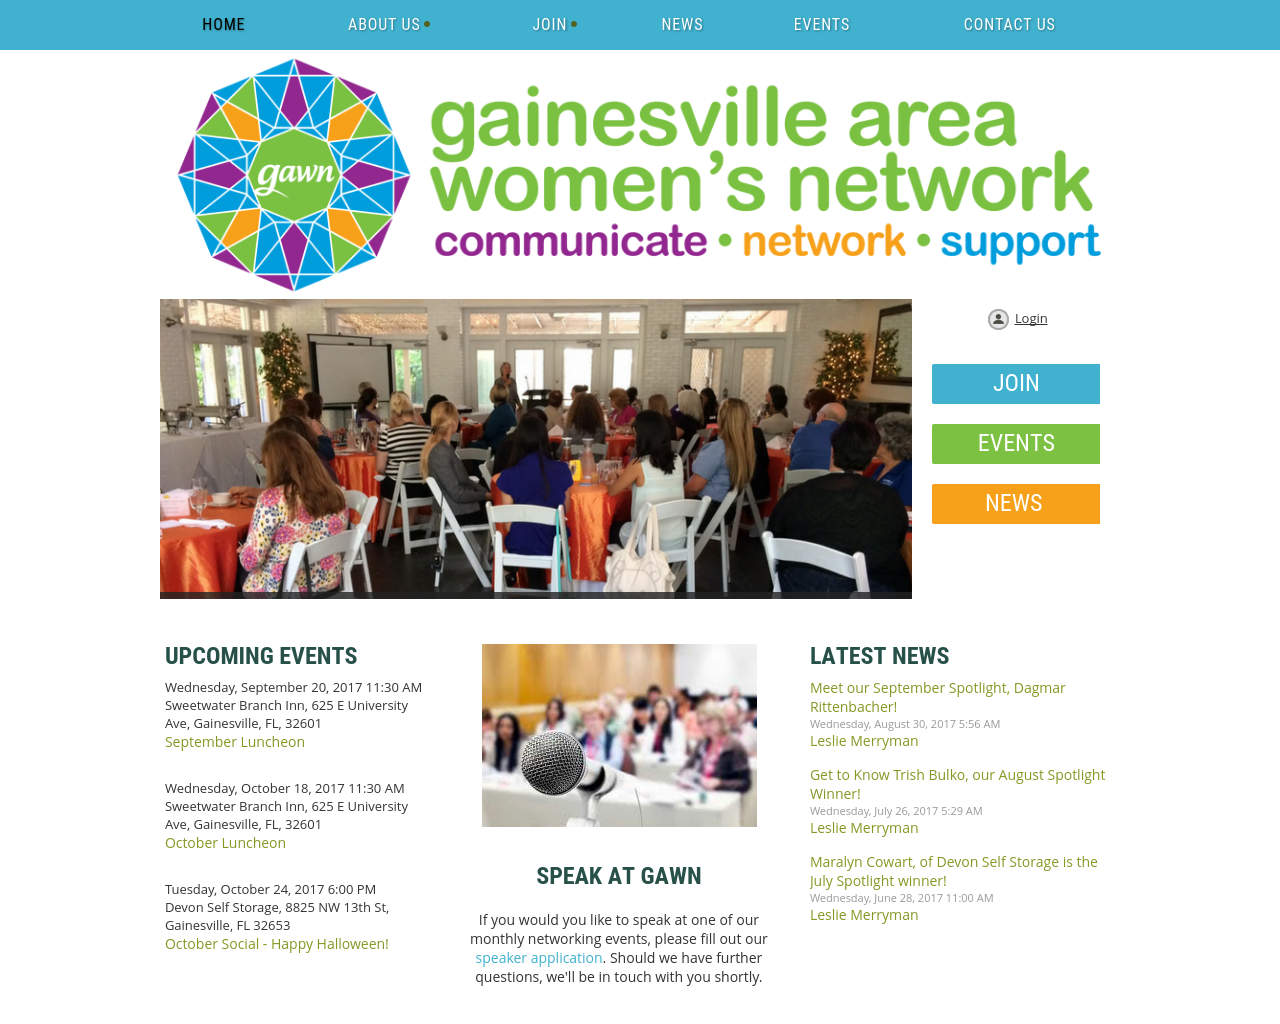 GAWN---Gainesville-Area-Women's-Network-Advertising-Reviews-Pricing